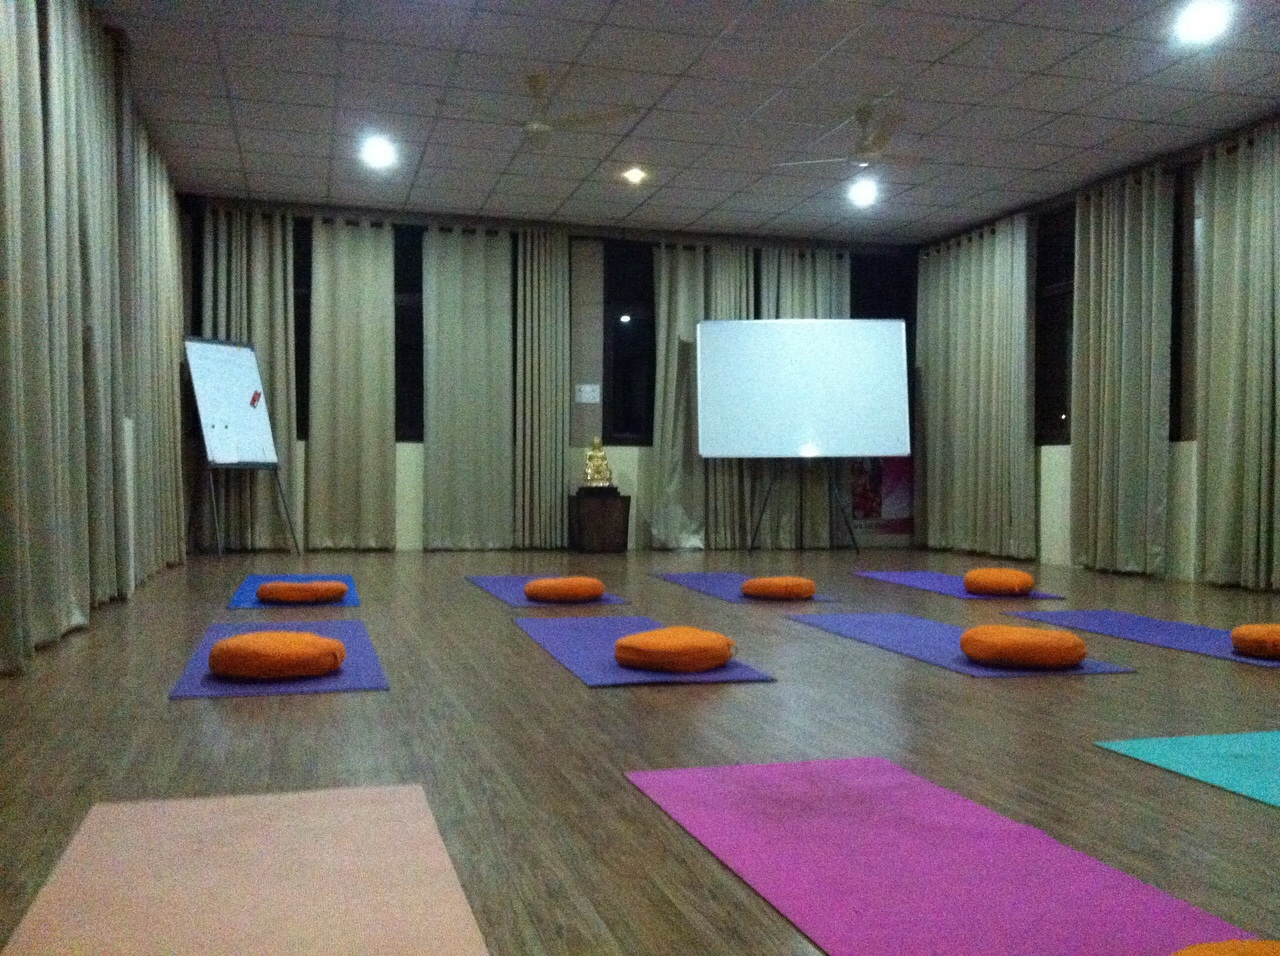 Vishwa Shanti Yoga School first image